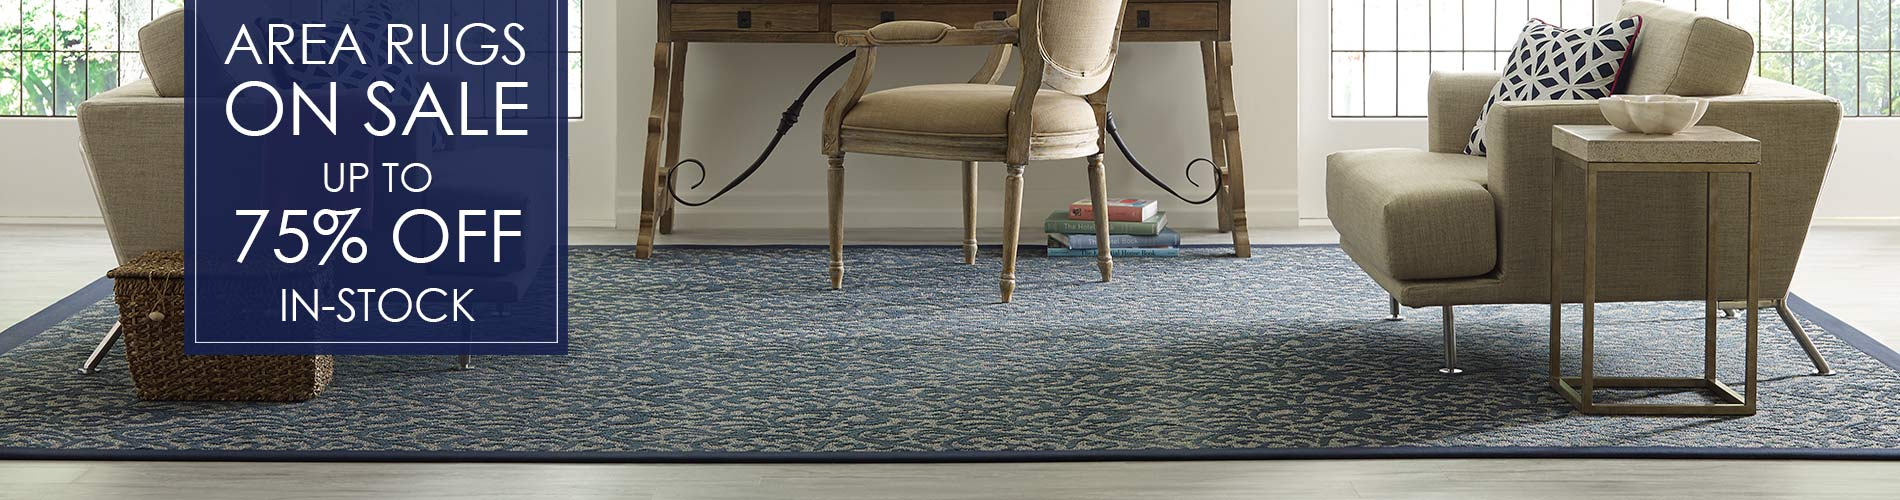 Up to 75% off on area rugs right now! Don't miss these great deals! Come visit our showroom in Portland, Maine.